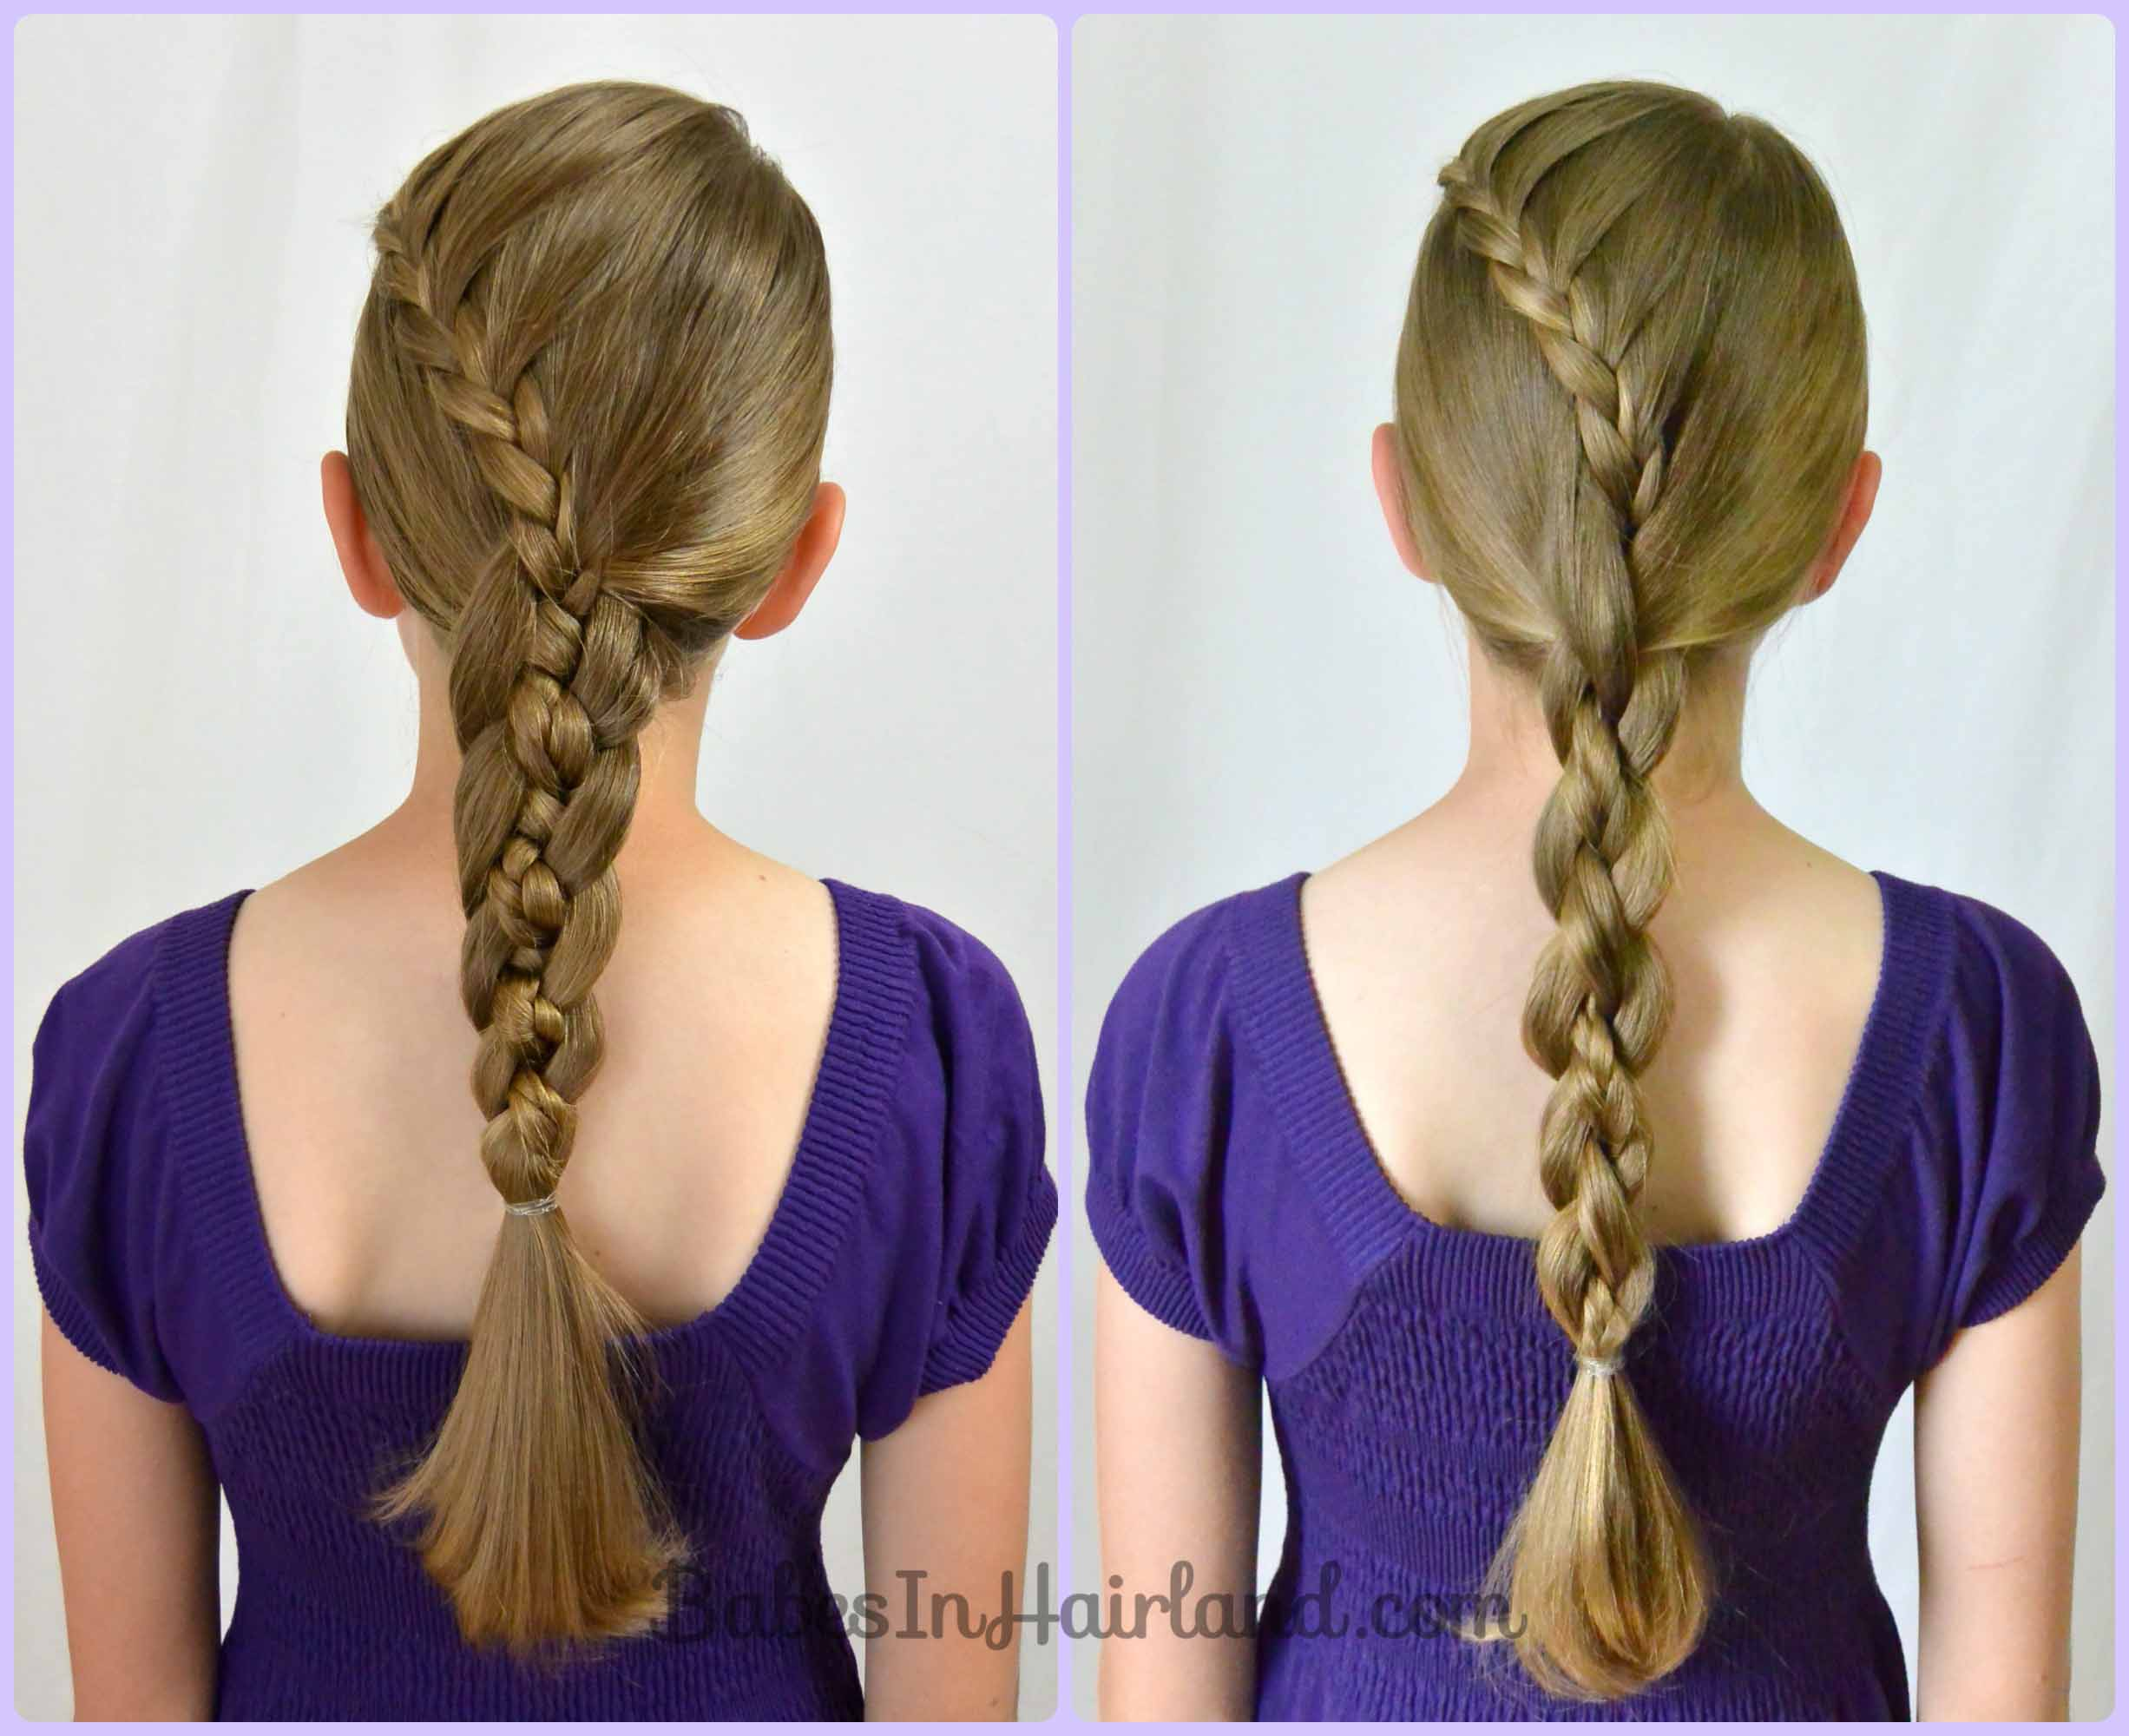 Tremendous Lace Braid Into A 4 Strand Braid Babes In Hairland Hairstyle Inspiration Daily Dogsangcom